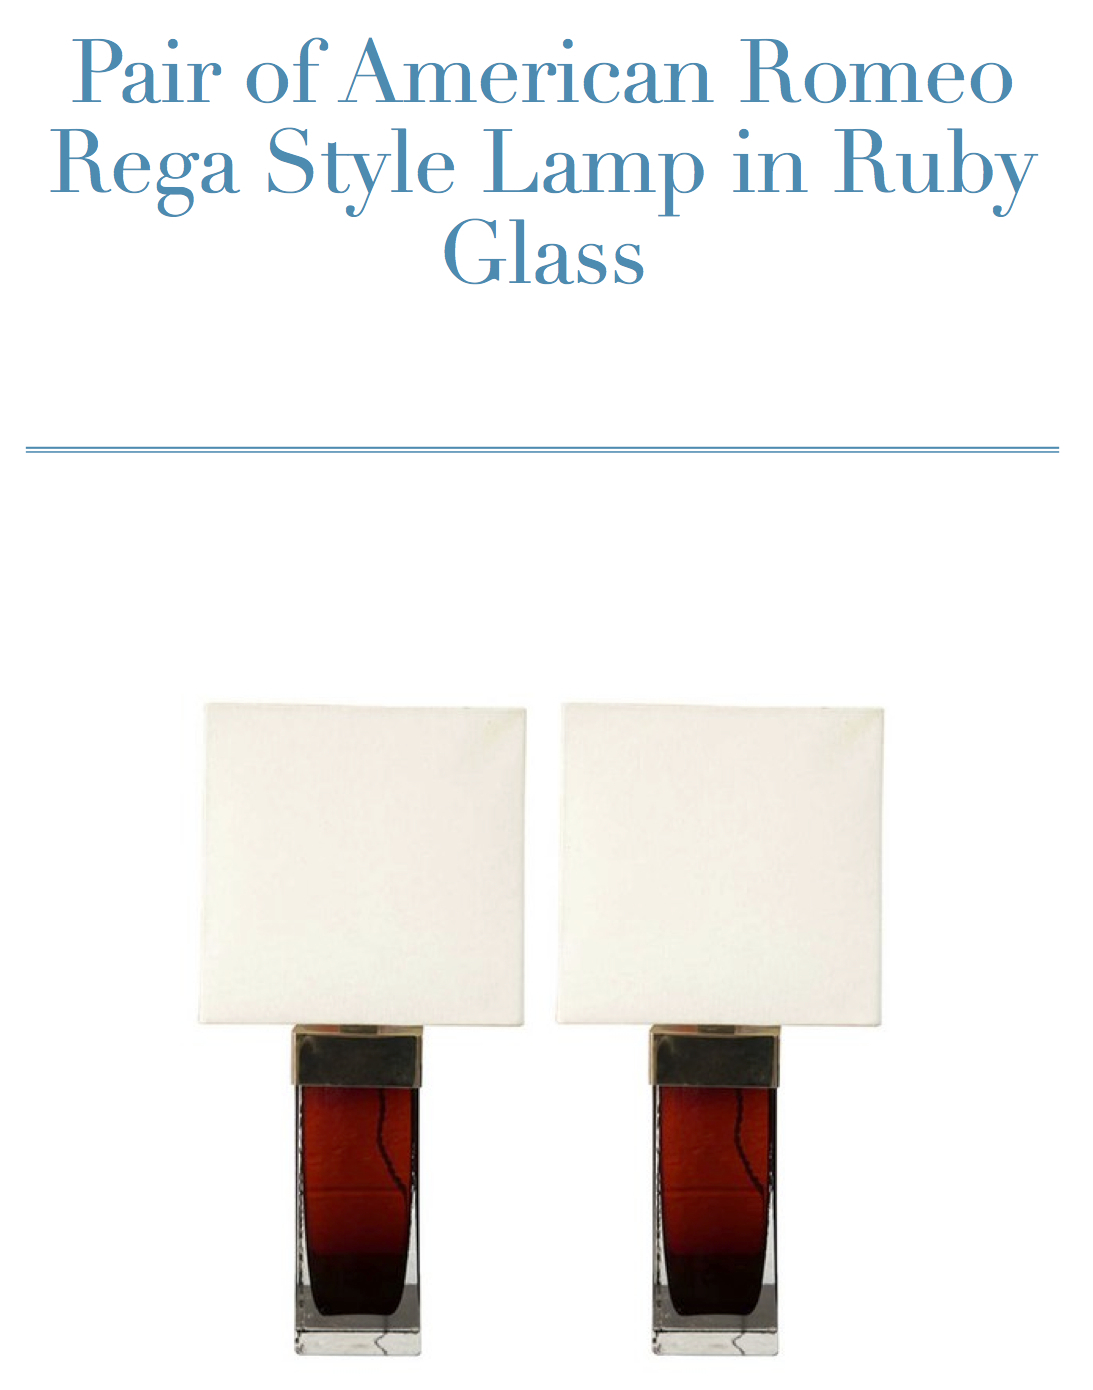 Ruby lamps